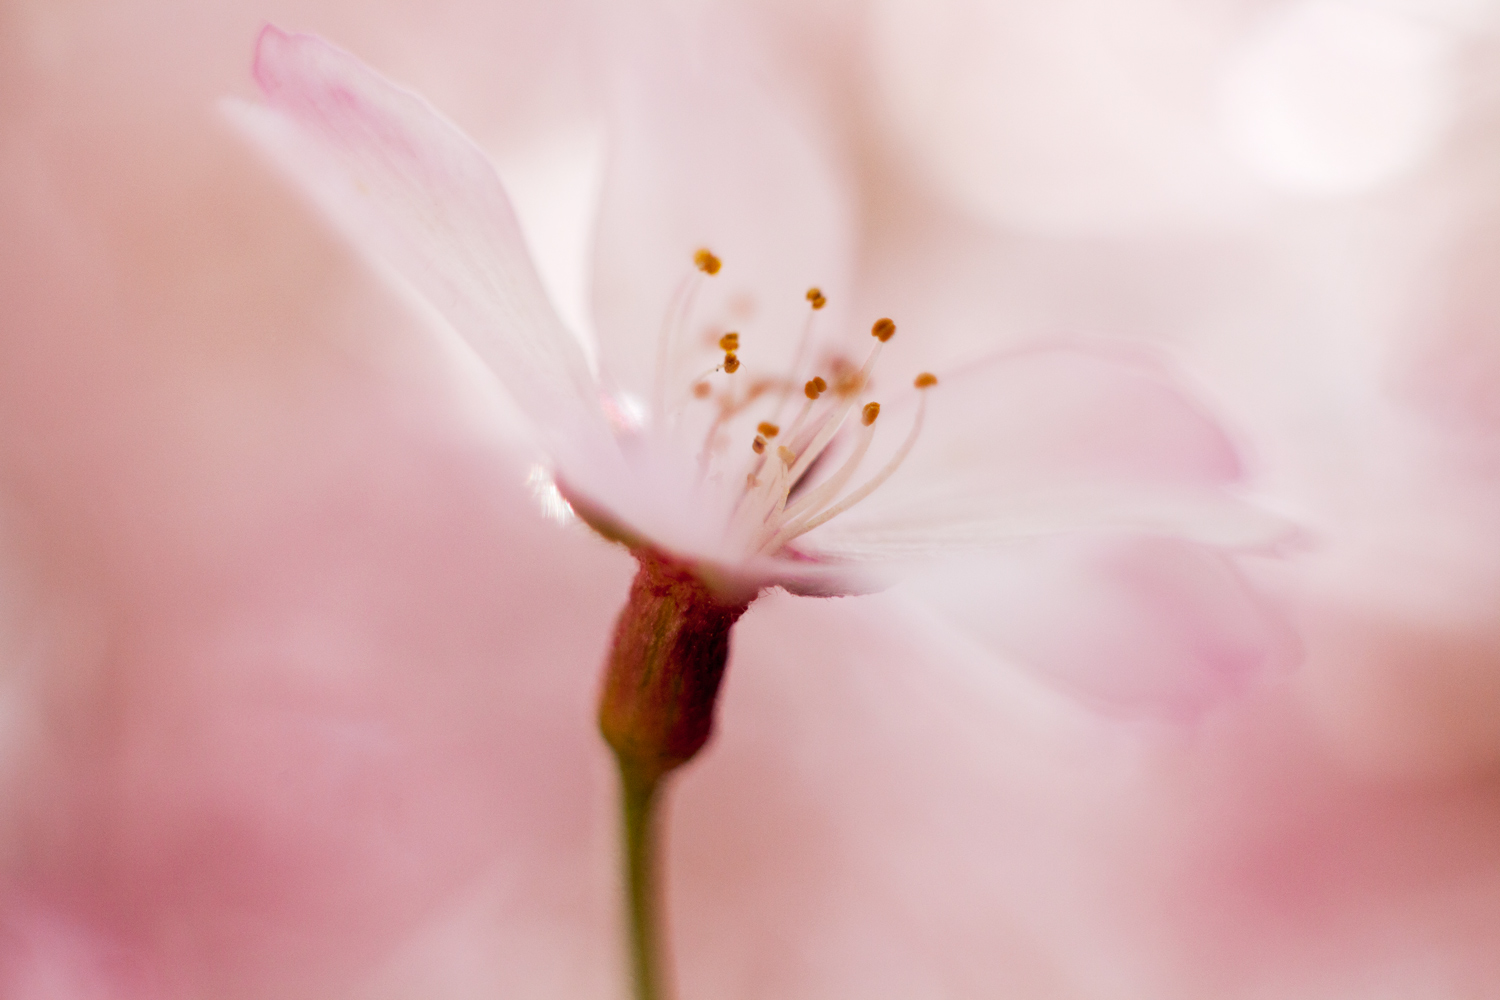 https://i0.wp.com/digital-photography-school.com/wp-content/uploads/2019/11/shapes_and_forms_photography_pink_blossom.jpg?resize=1500%2C1000&ssl=1